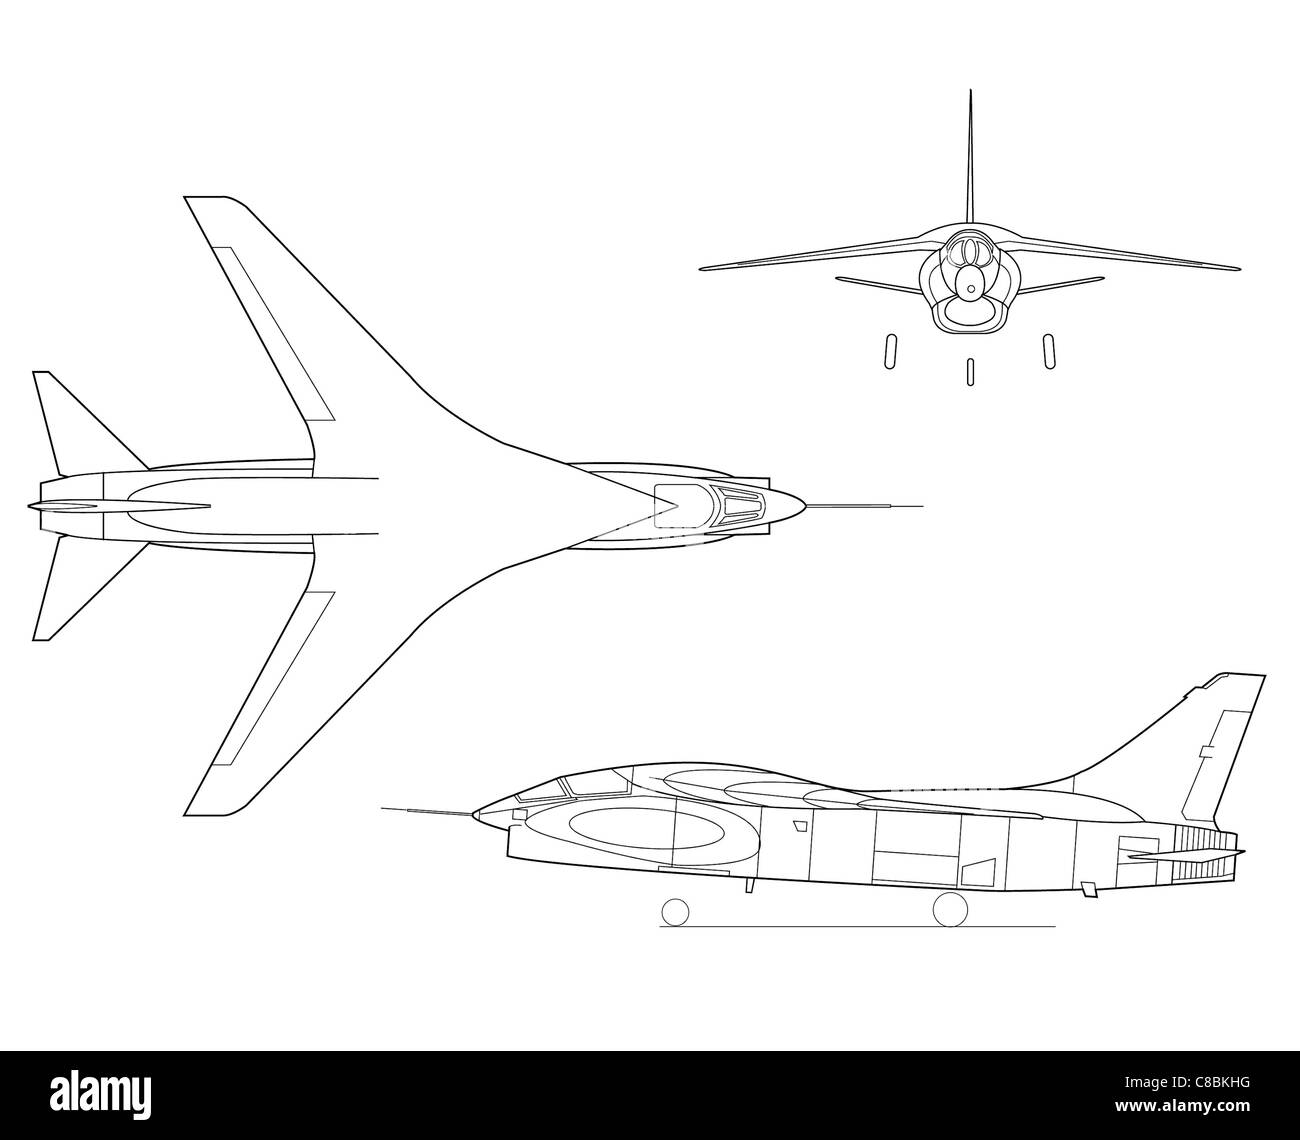 Line Drawing Airplane : View aircraft line art drawing the f supercritical